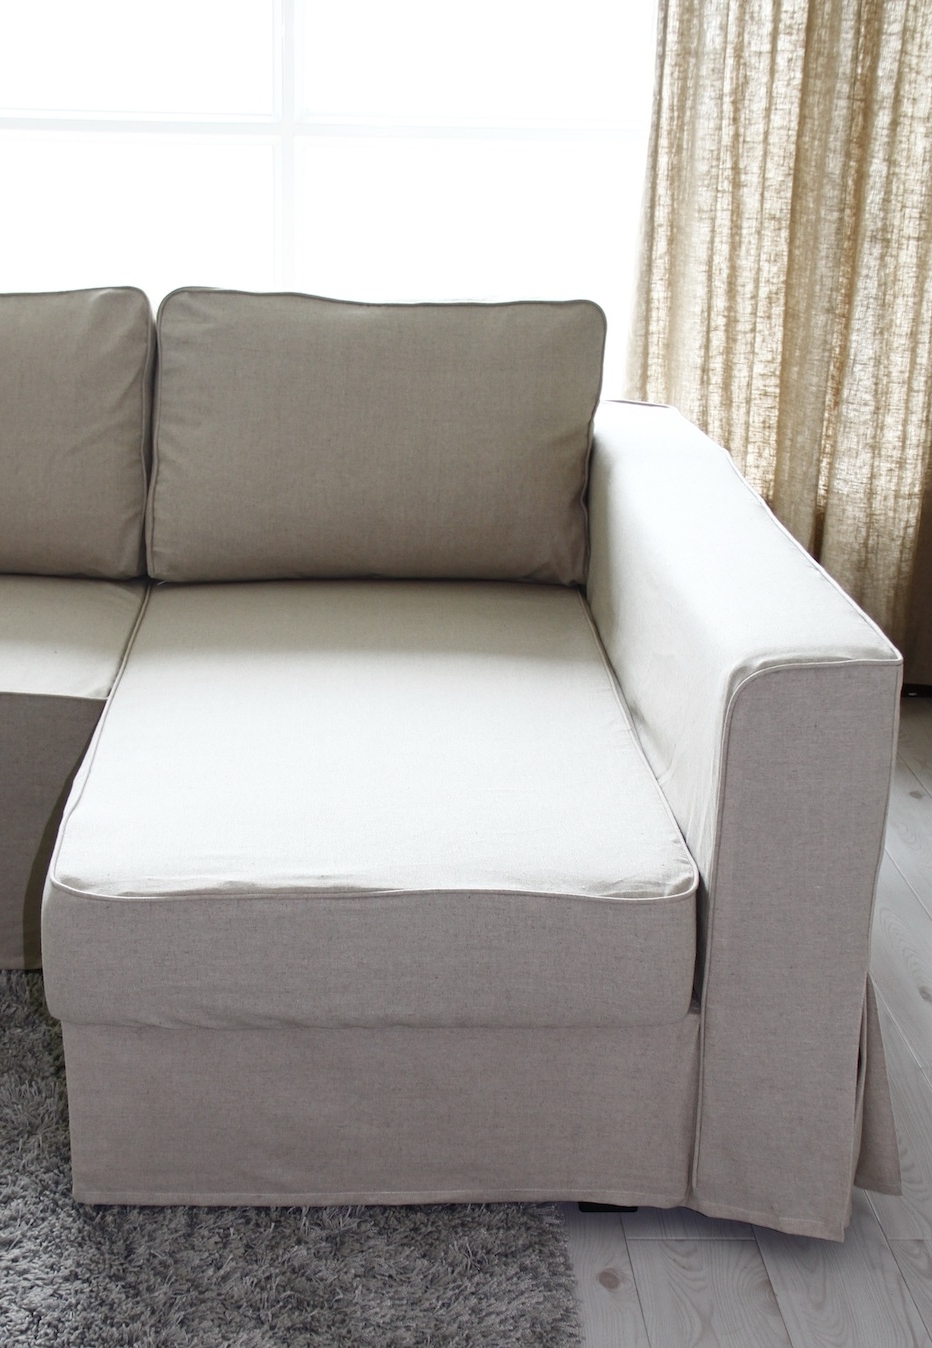 Most Current Fit Linen Manstad Sofa Slipcovers Now Available With Regard To Manstad Sofas (View 11 of 20)